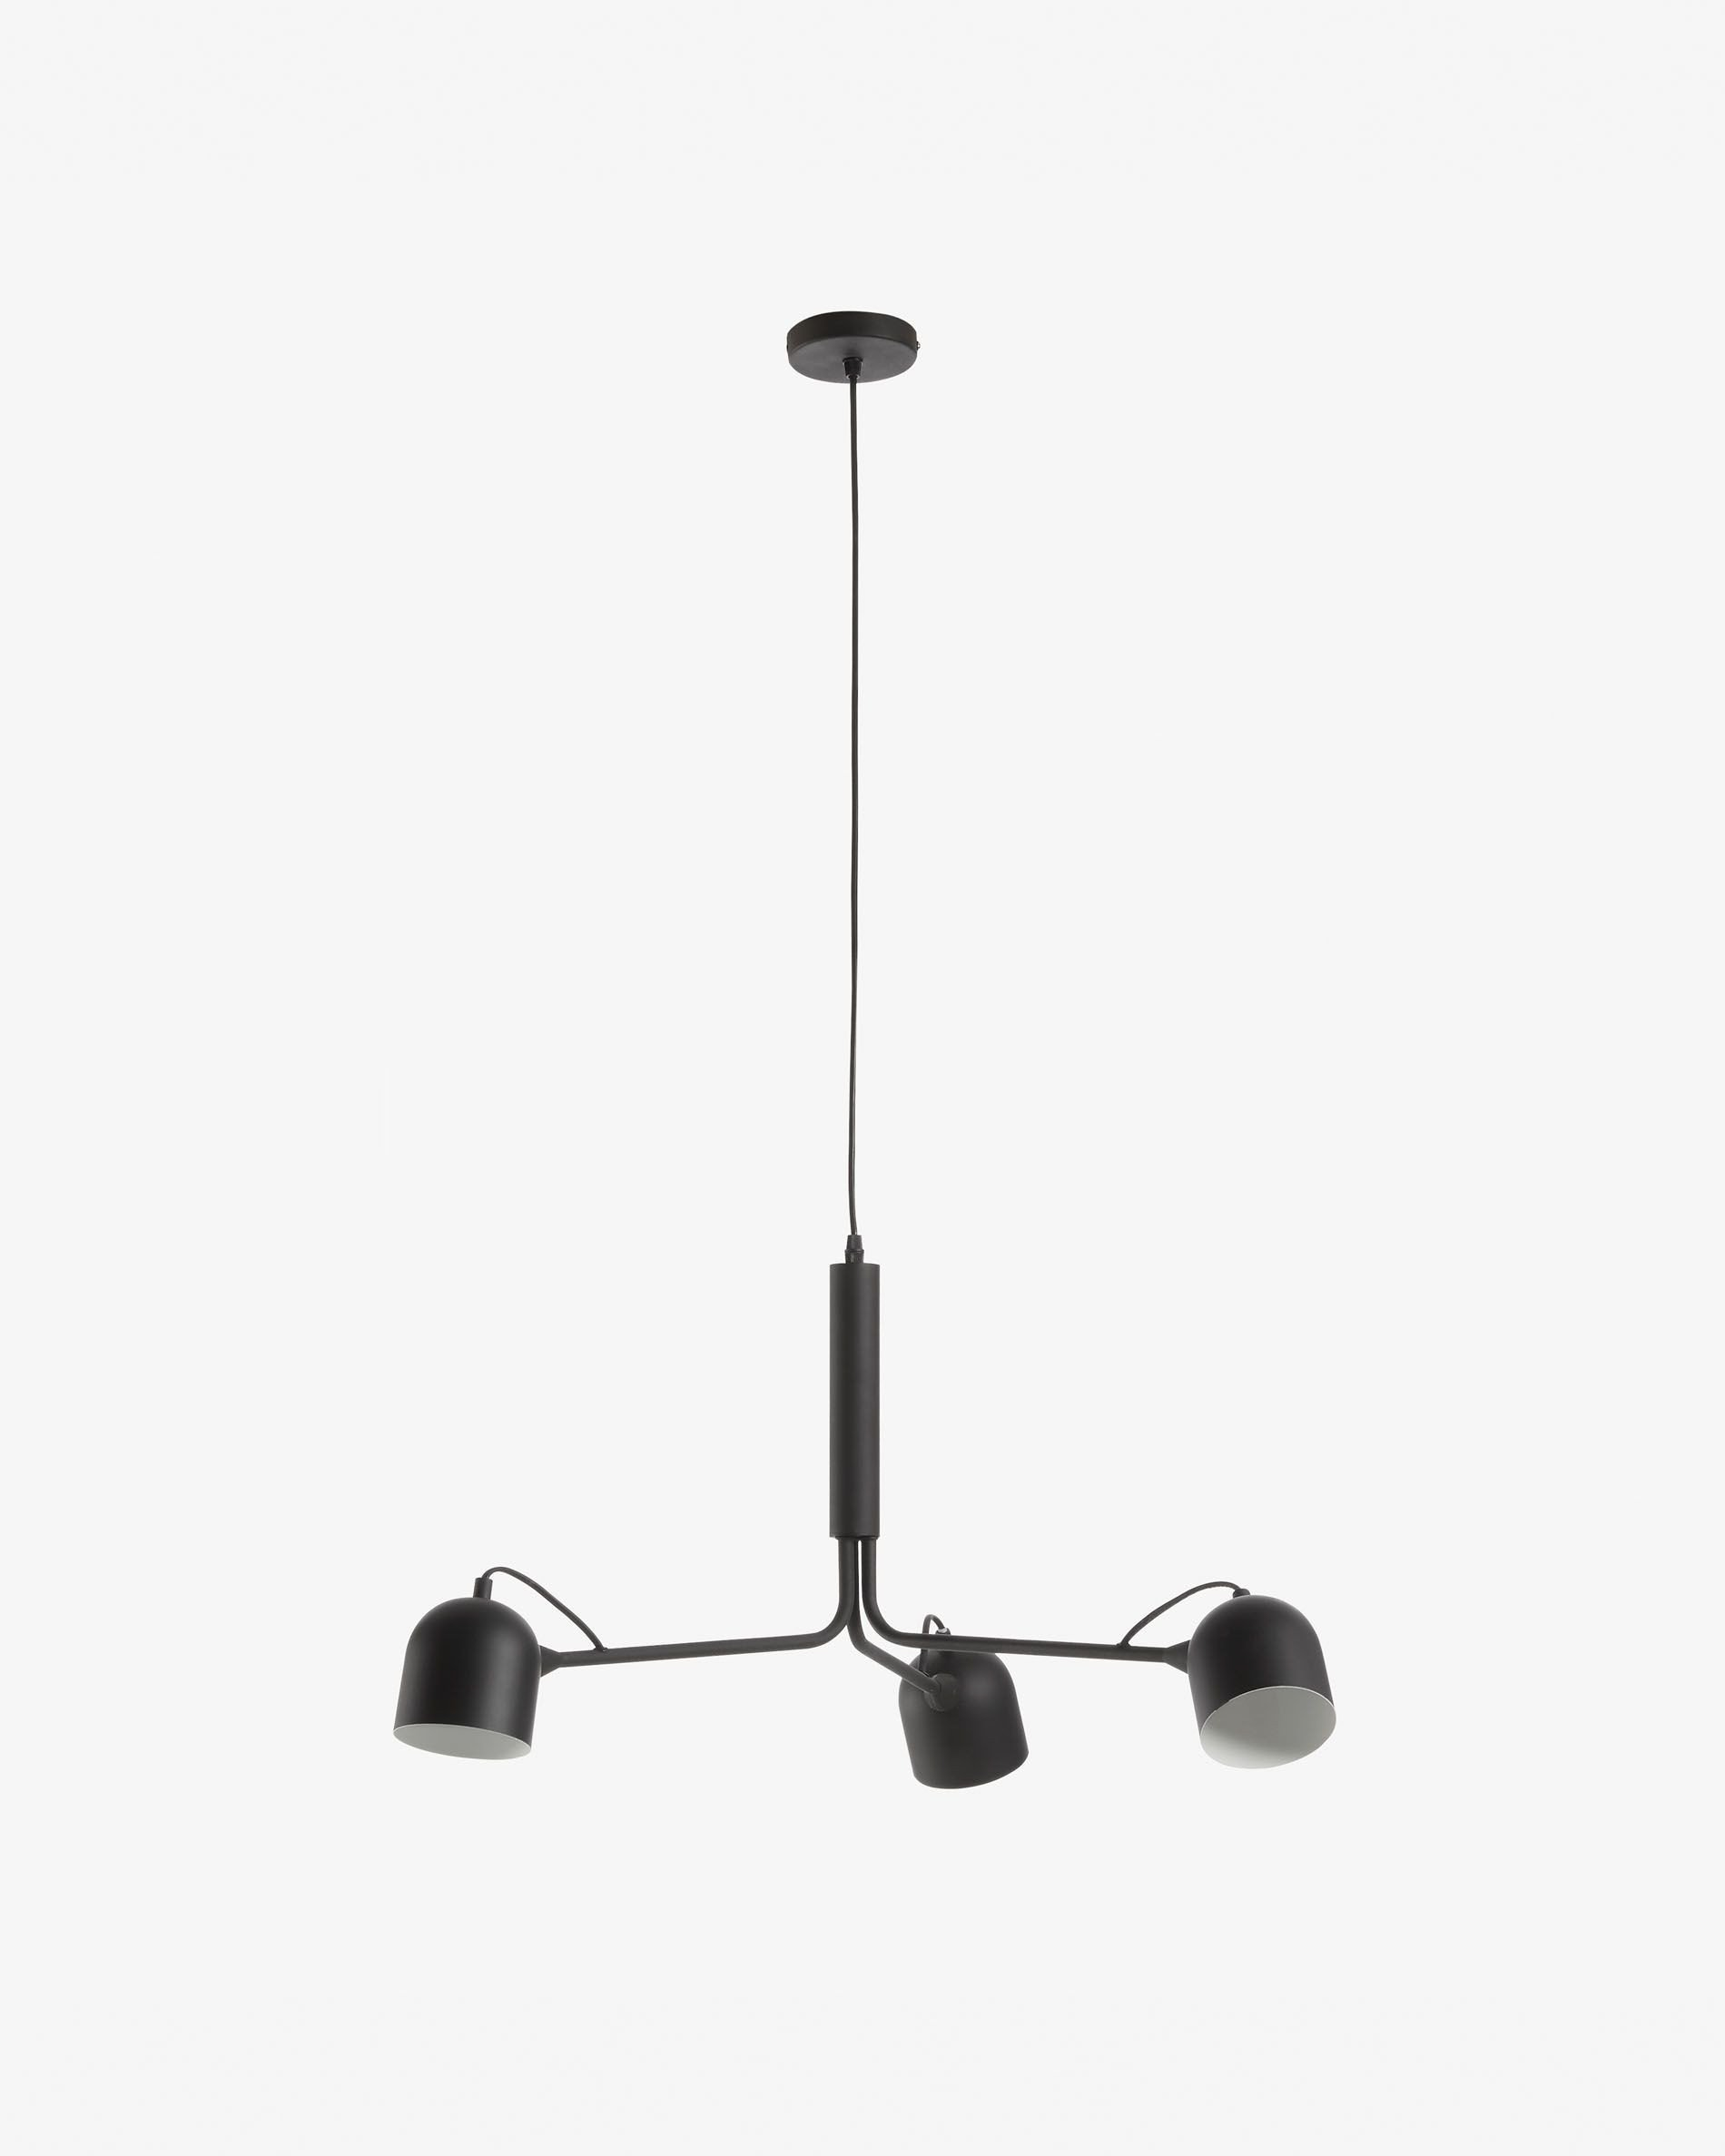 Cool Lamps for Bedroom Unique Lucilla Pendant Lamp Black